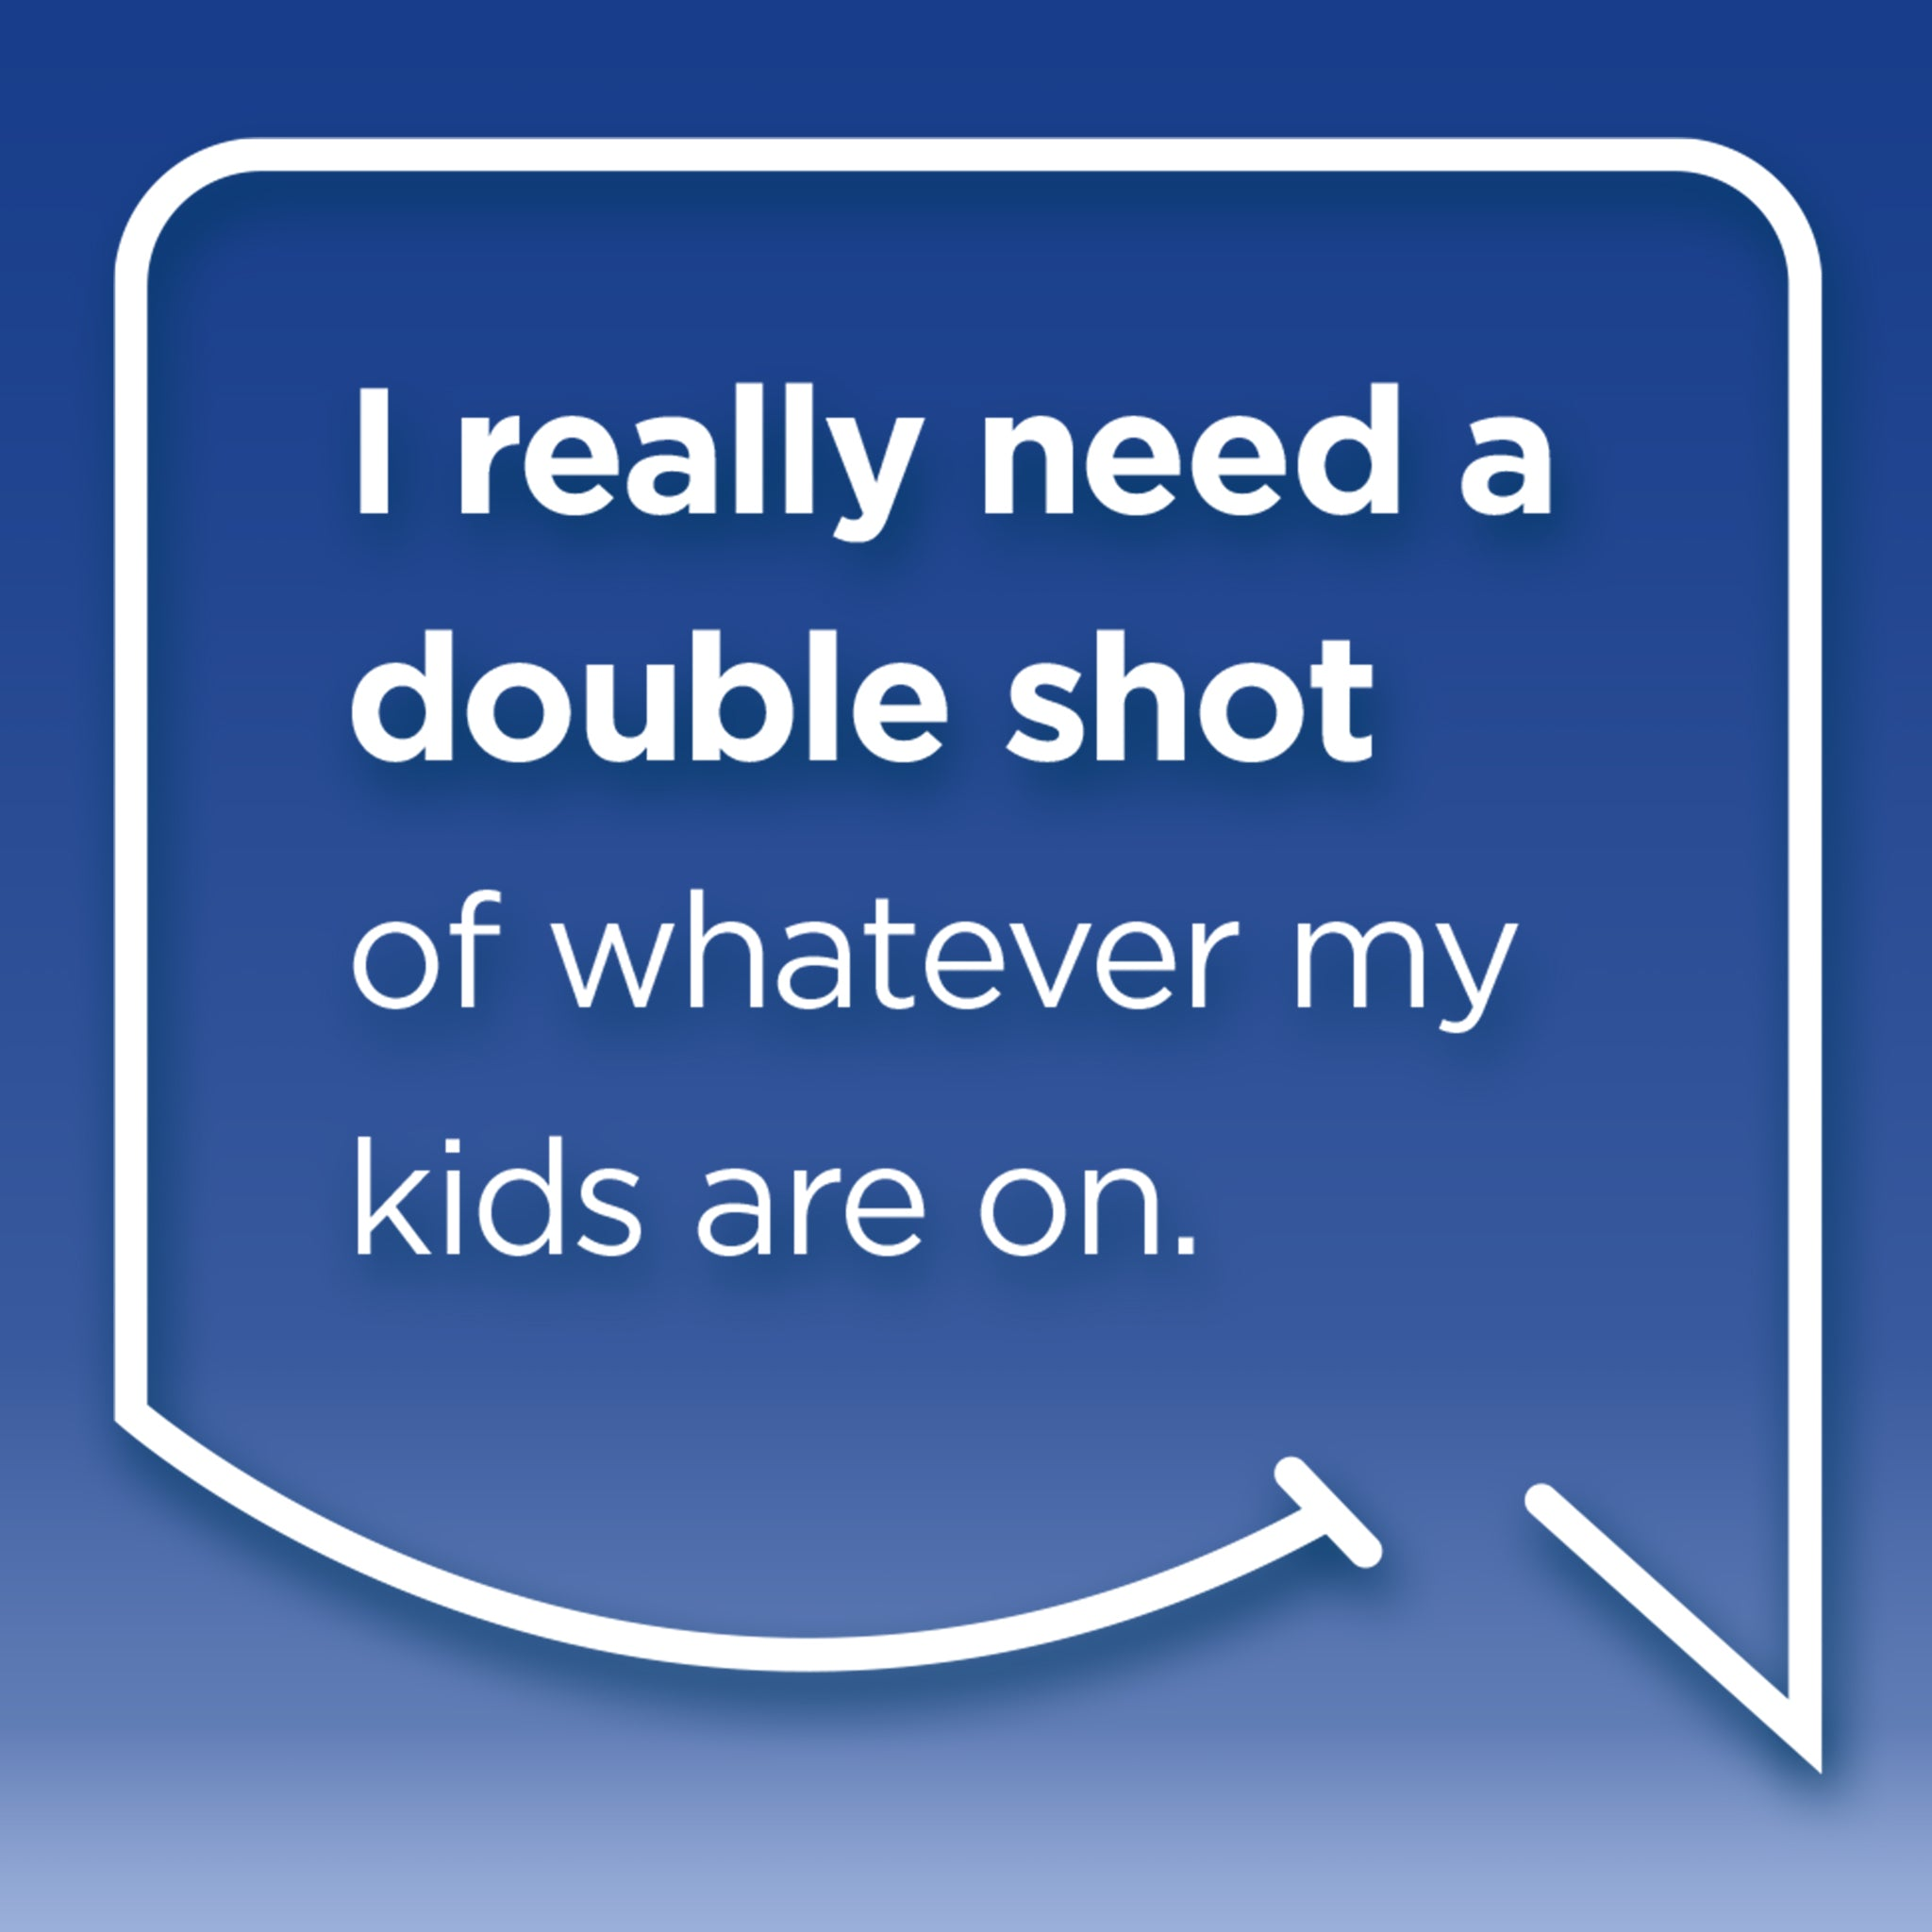 Funny Mom Quotes and Gifts: I really need a double shot, of whatever my kids are on.